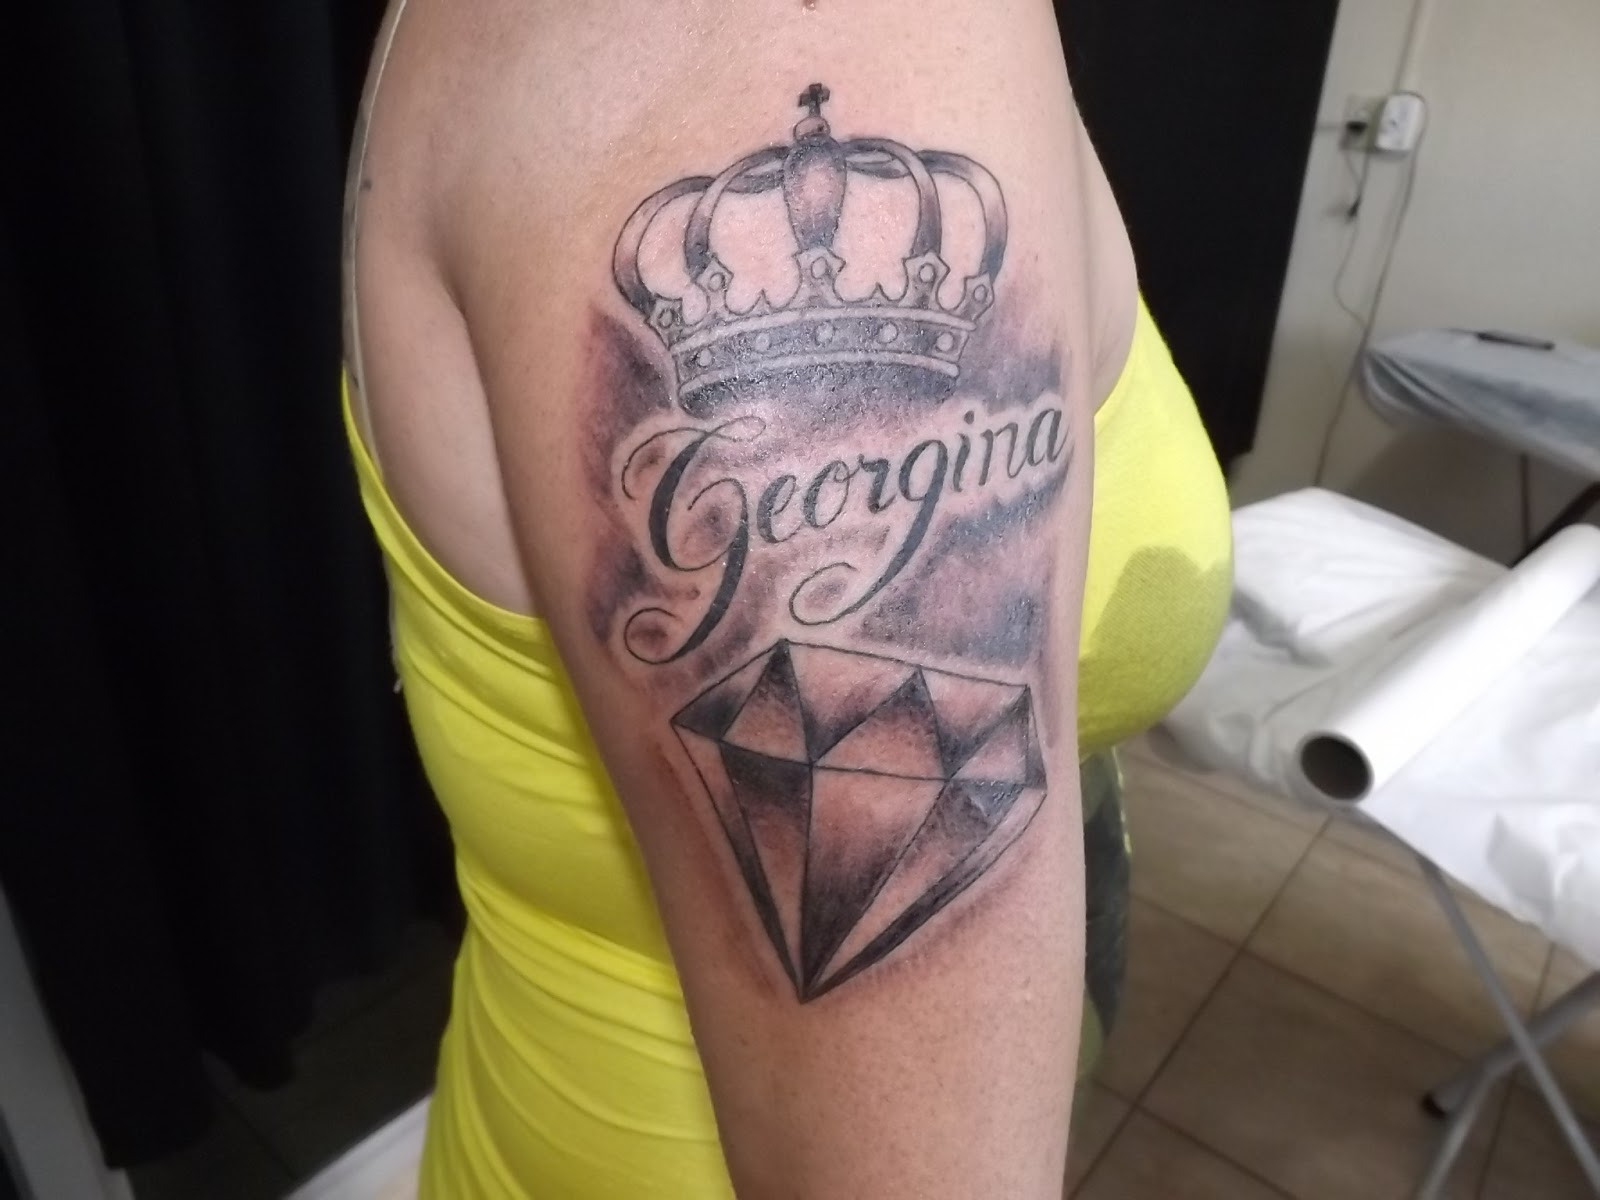 Super Leco's Tattoo: Diamantes com coroas e nomes FZ96